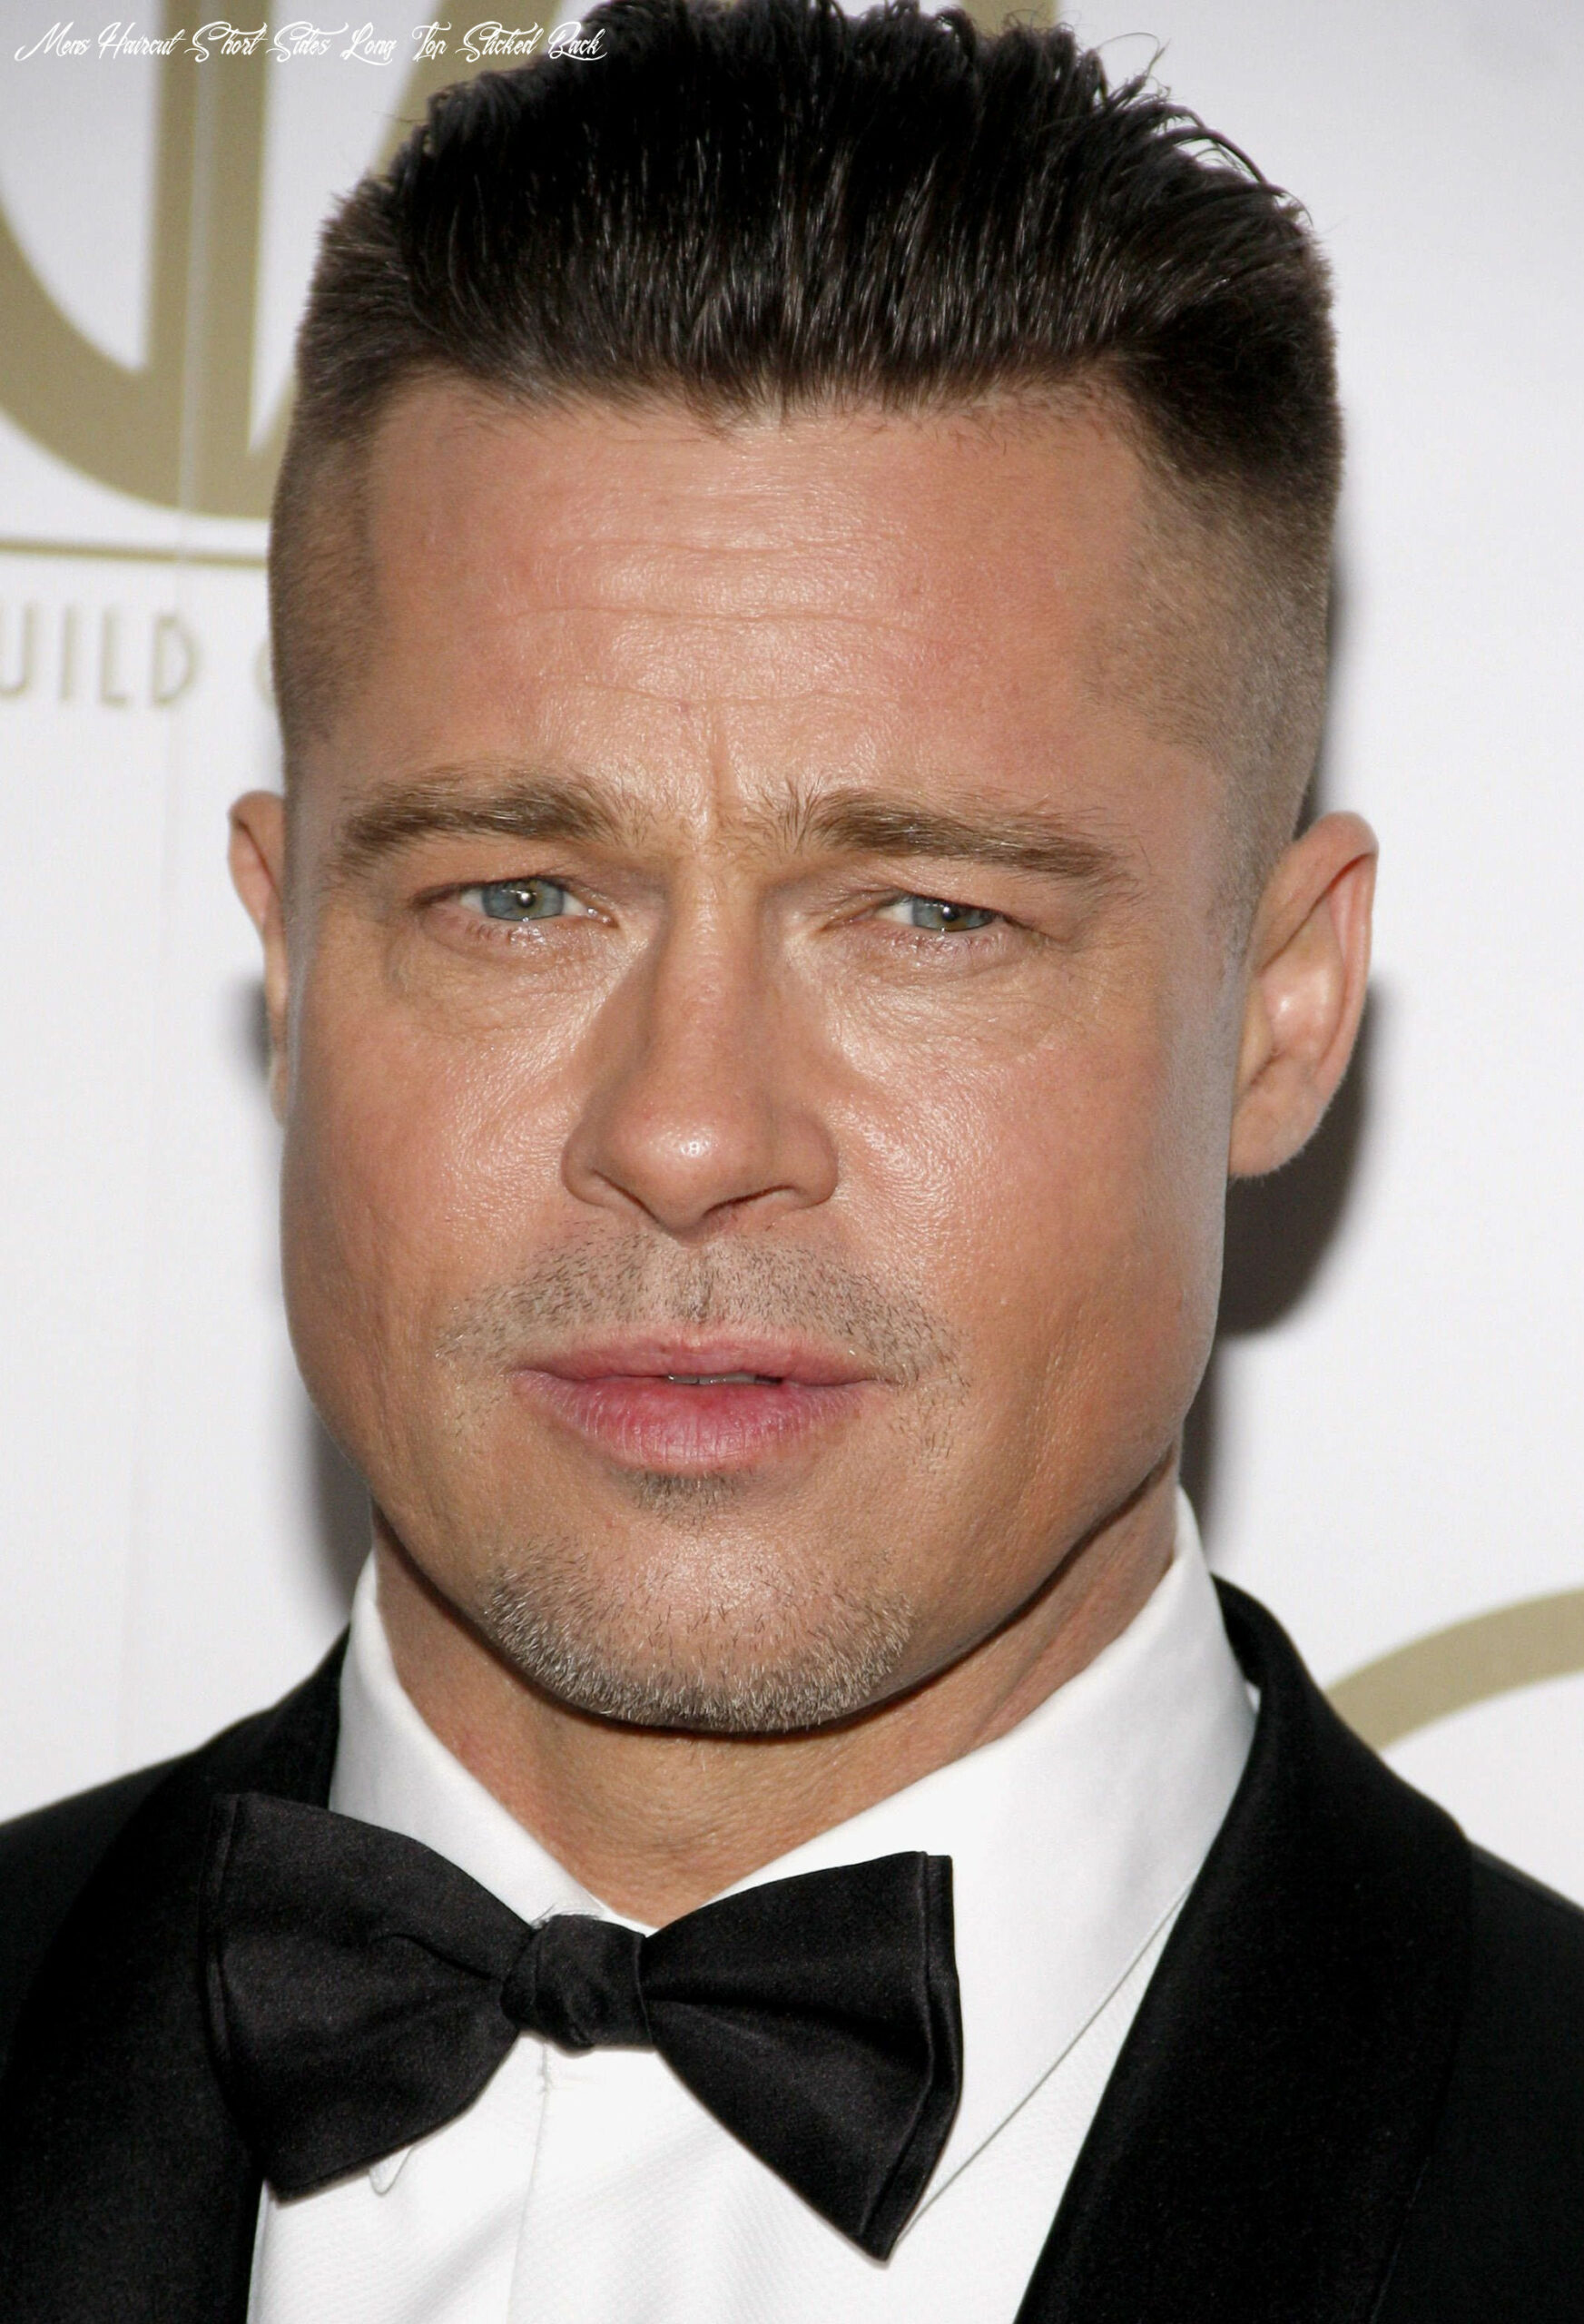 11 slicked back hairstyles: a classy style made simple guide mens haircut short sides long top slicked back